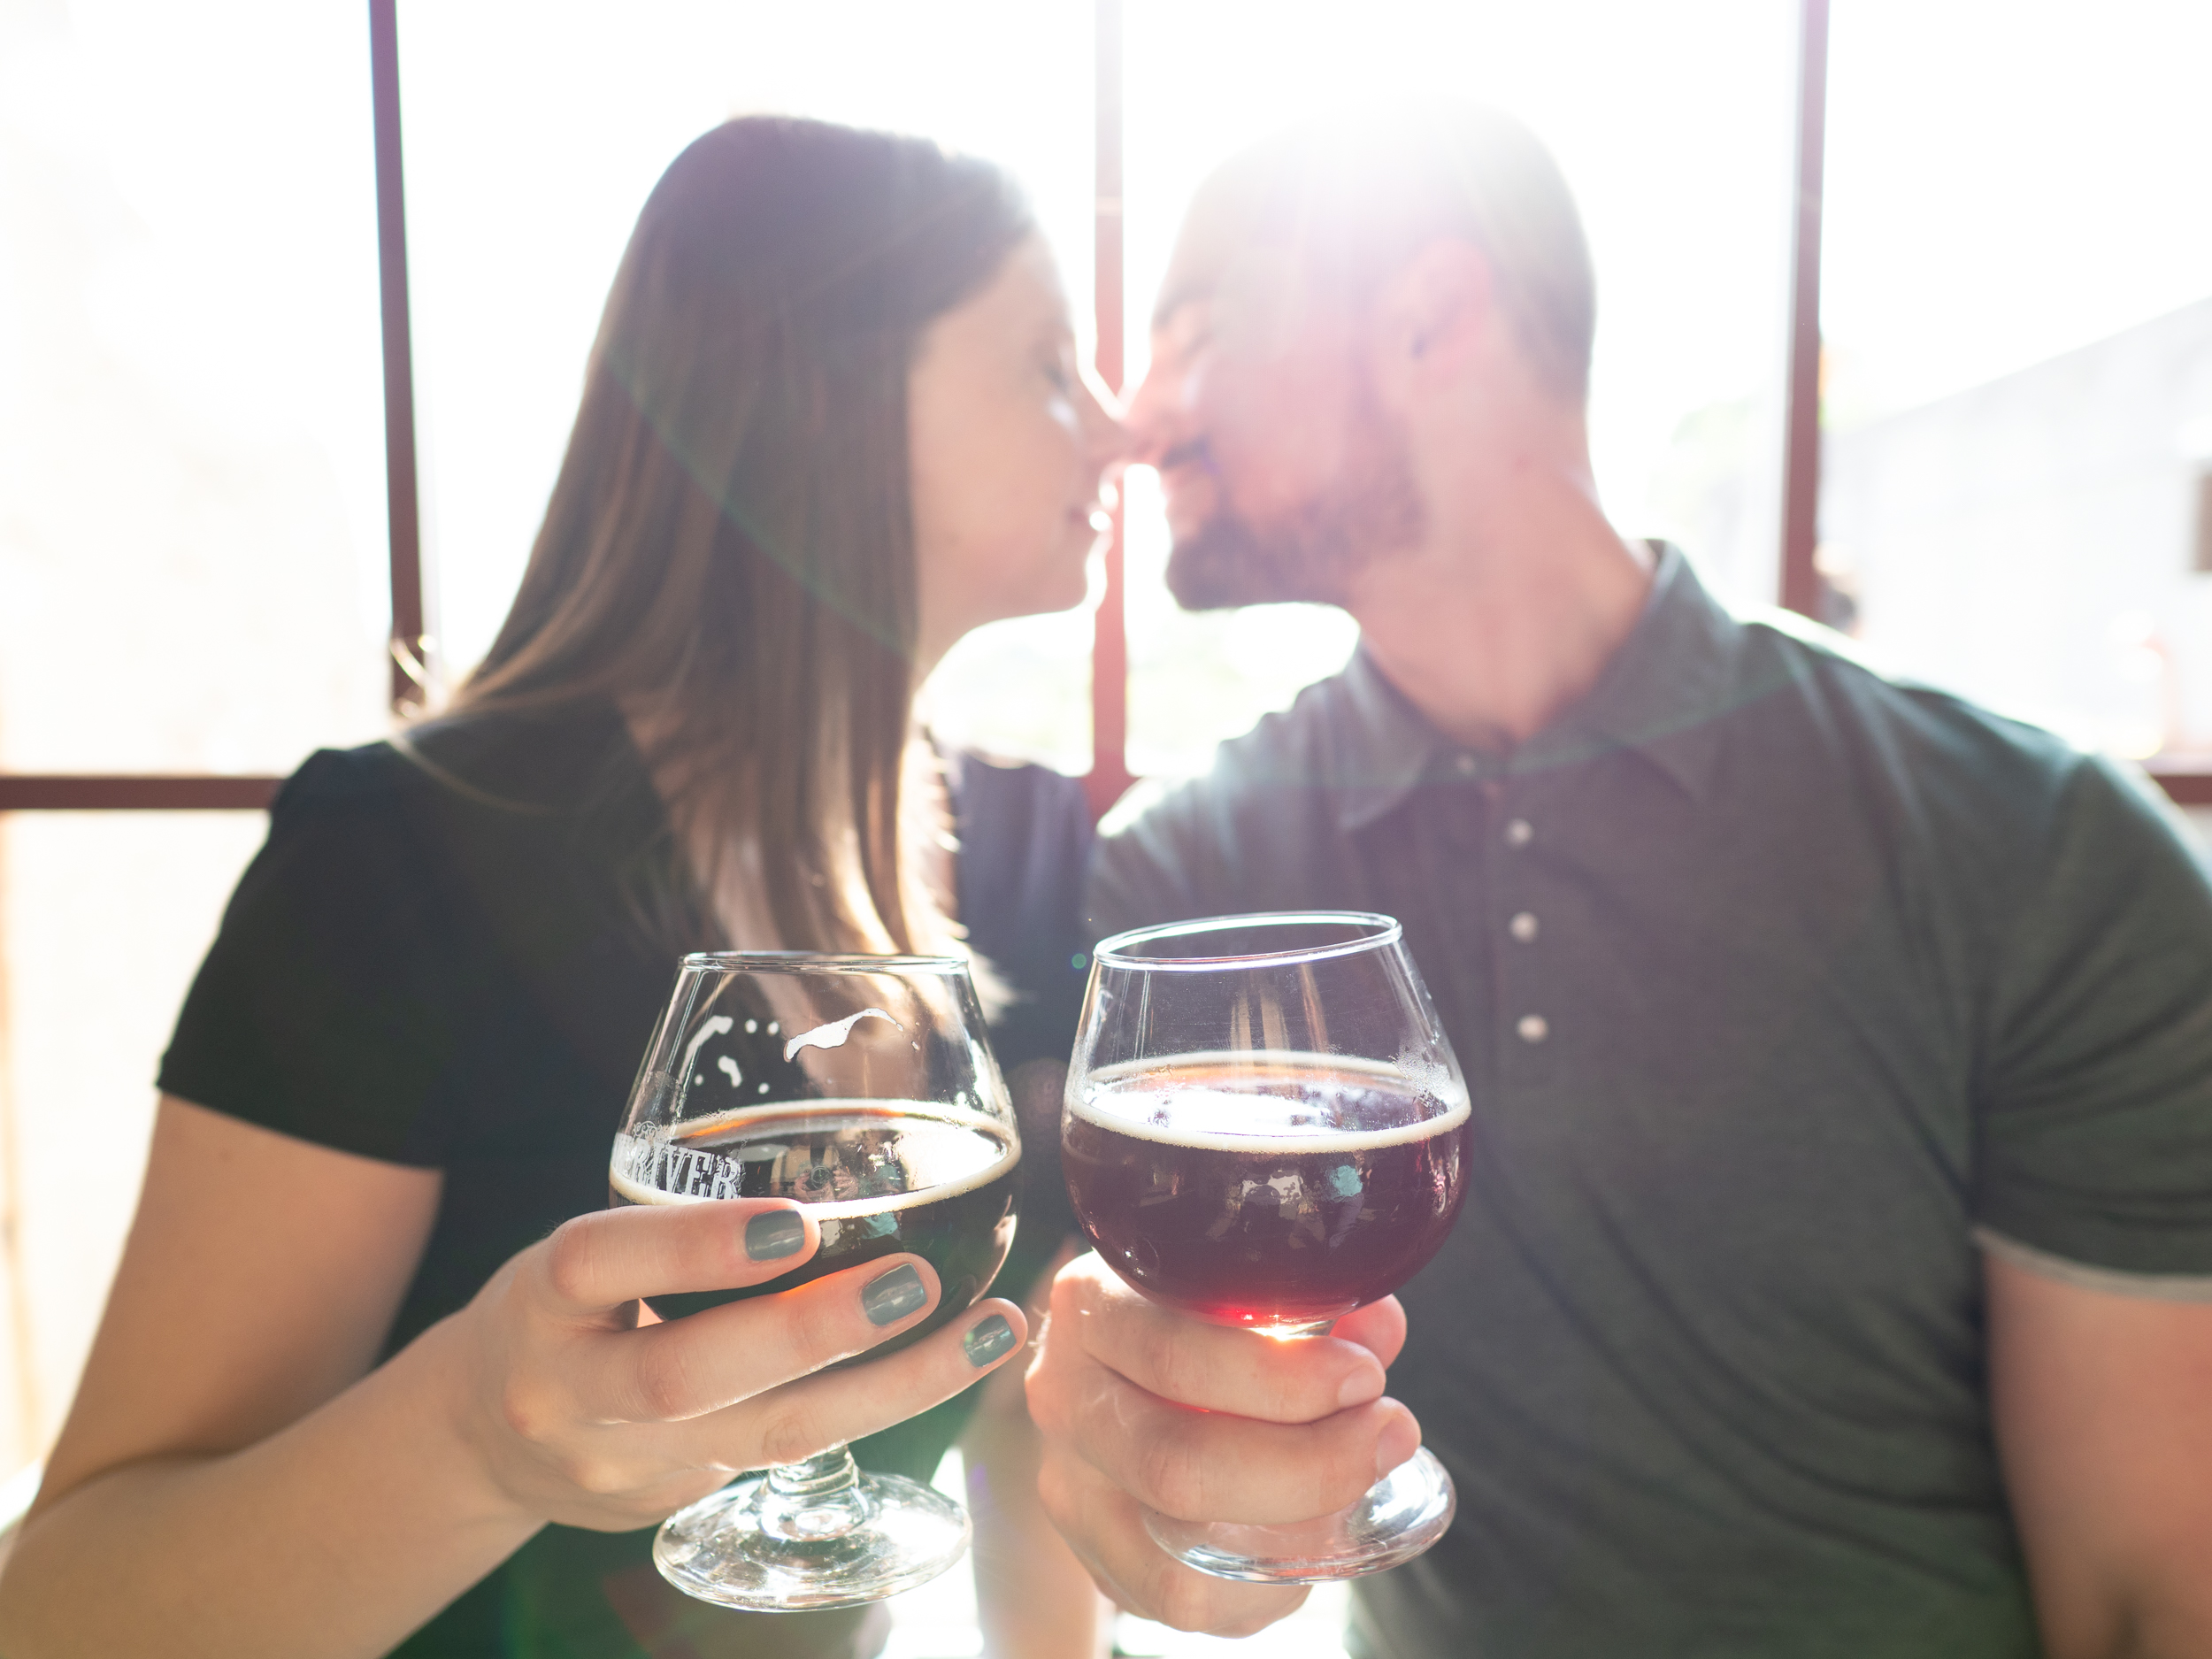 saxapahaw-brewery-river-chapel hill-carrboro-engagement-portraits-wedding-emily-brad-30385.jpg